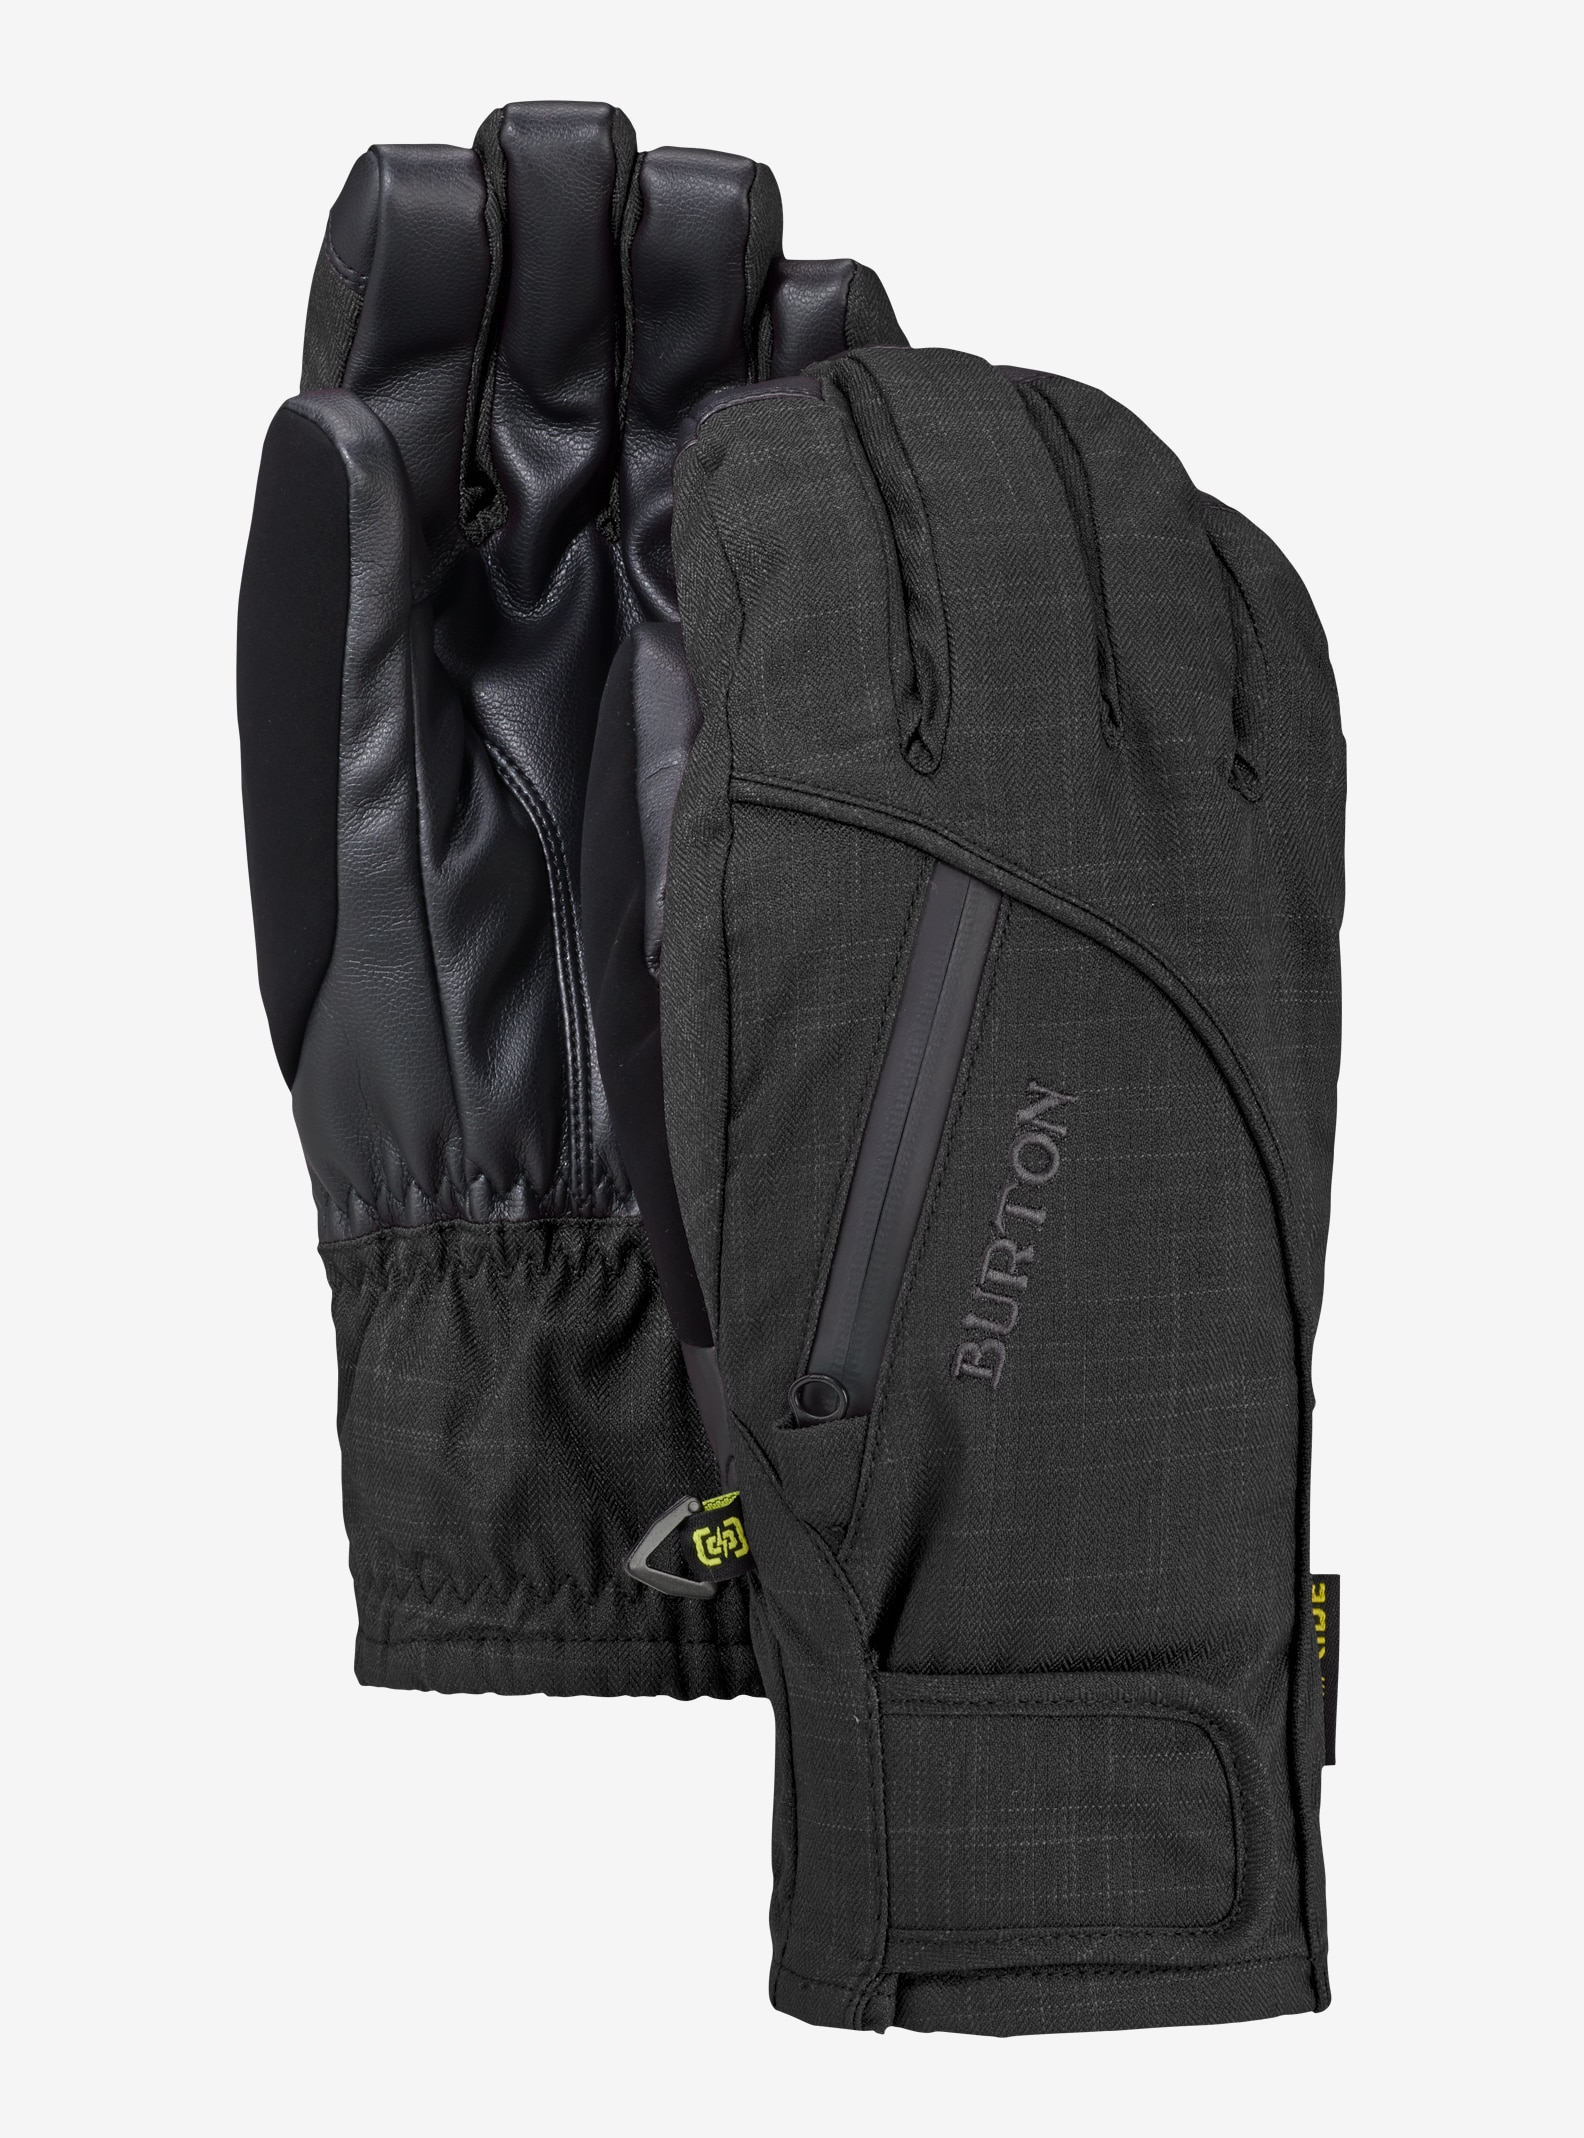 Women's Burton Women's Baker 2-In-1 Under Glove shown in True Black